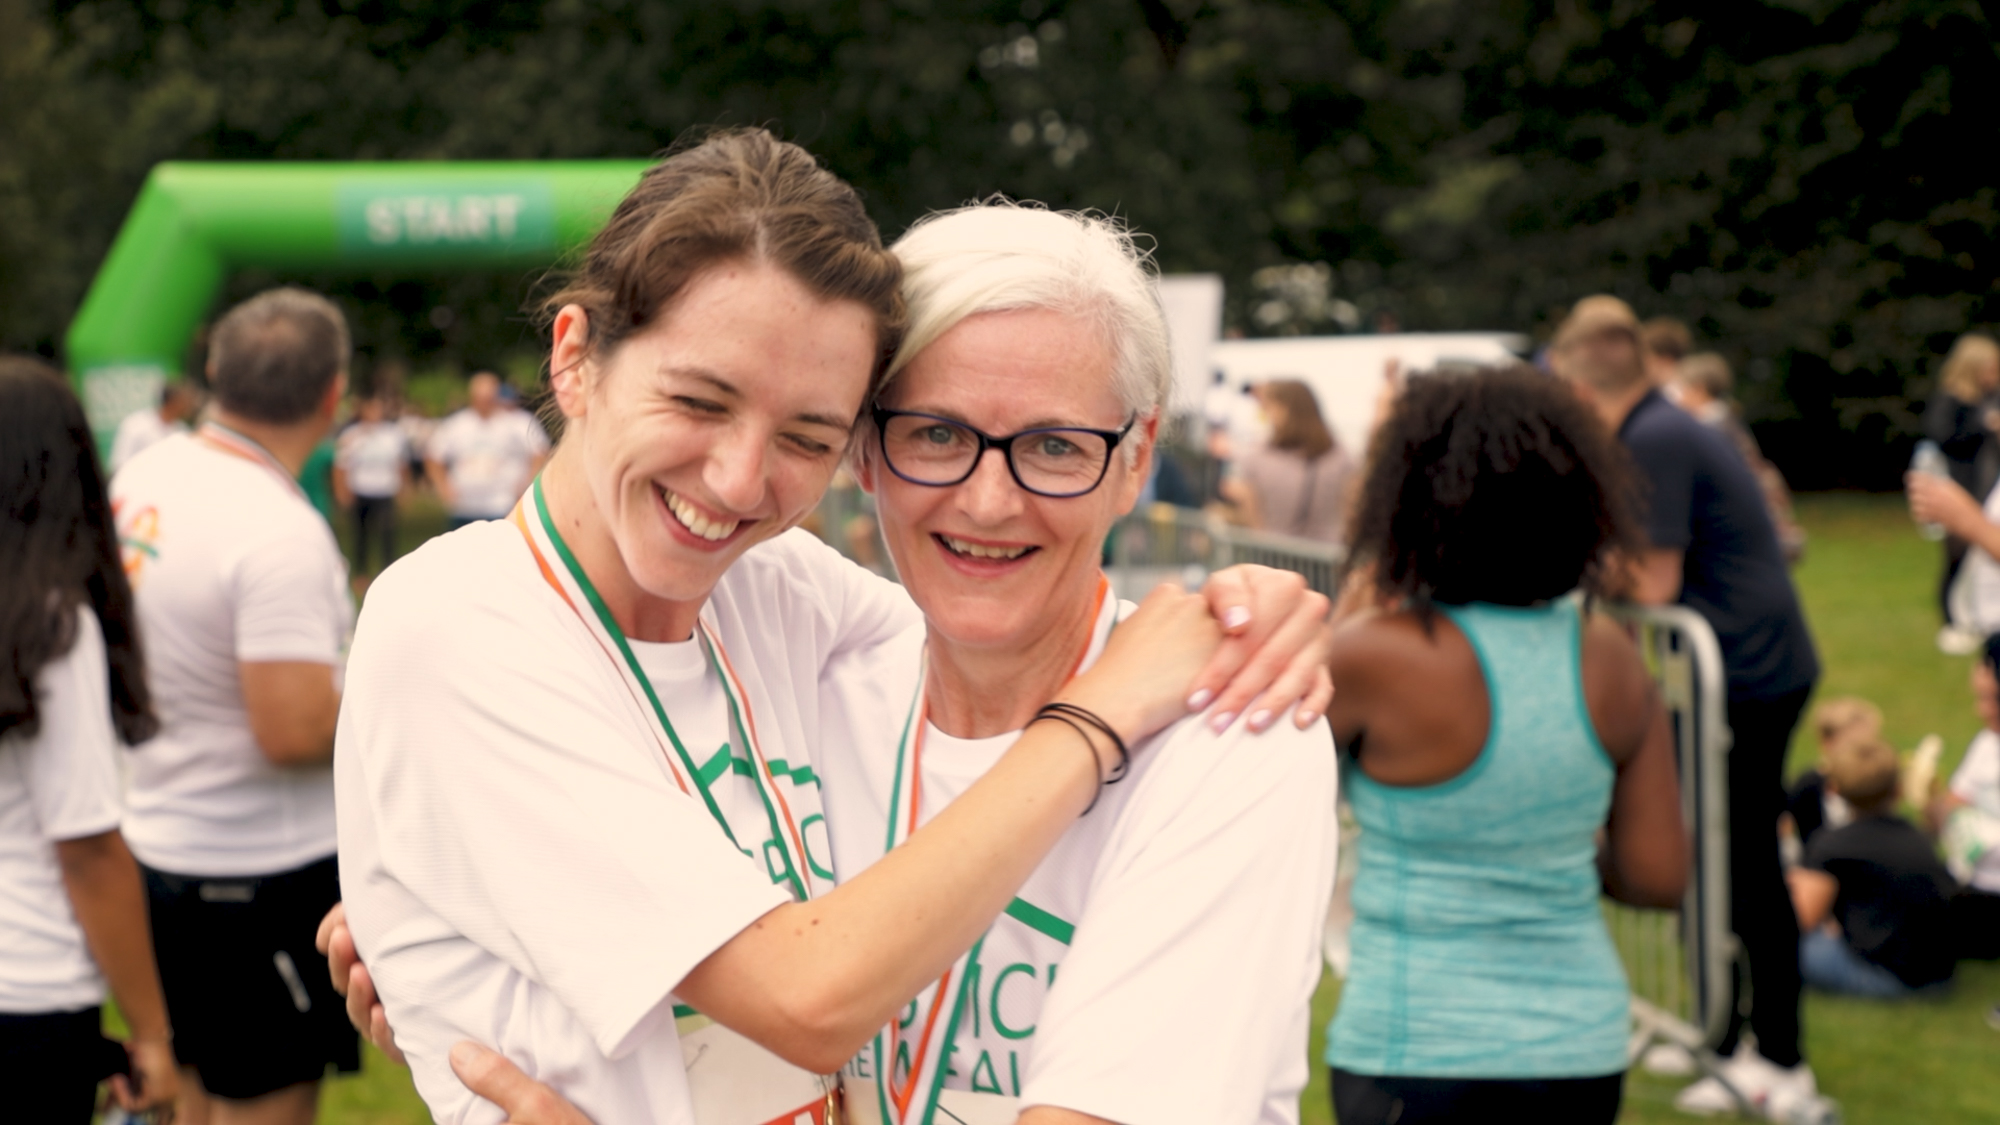 Embracing at the finish line of Hospice Run 2021